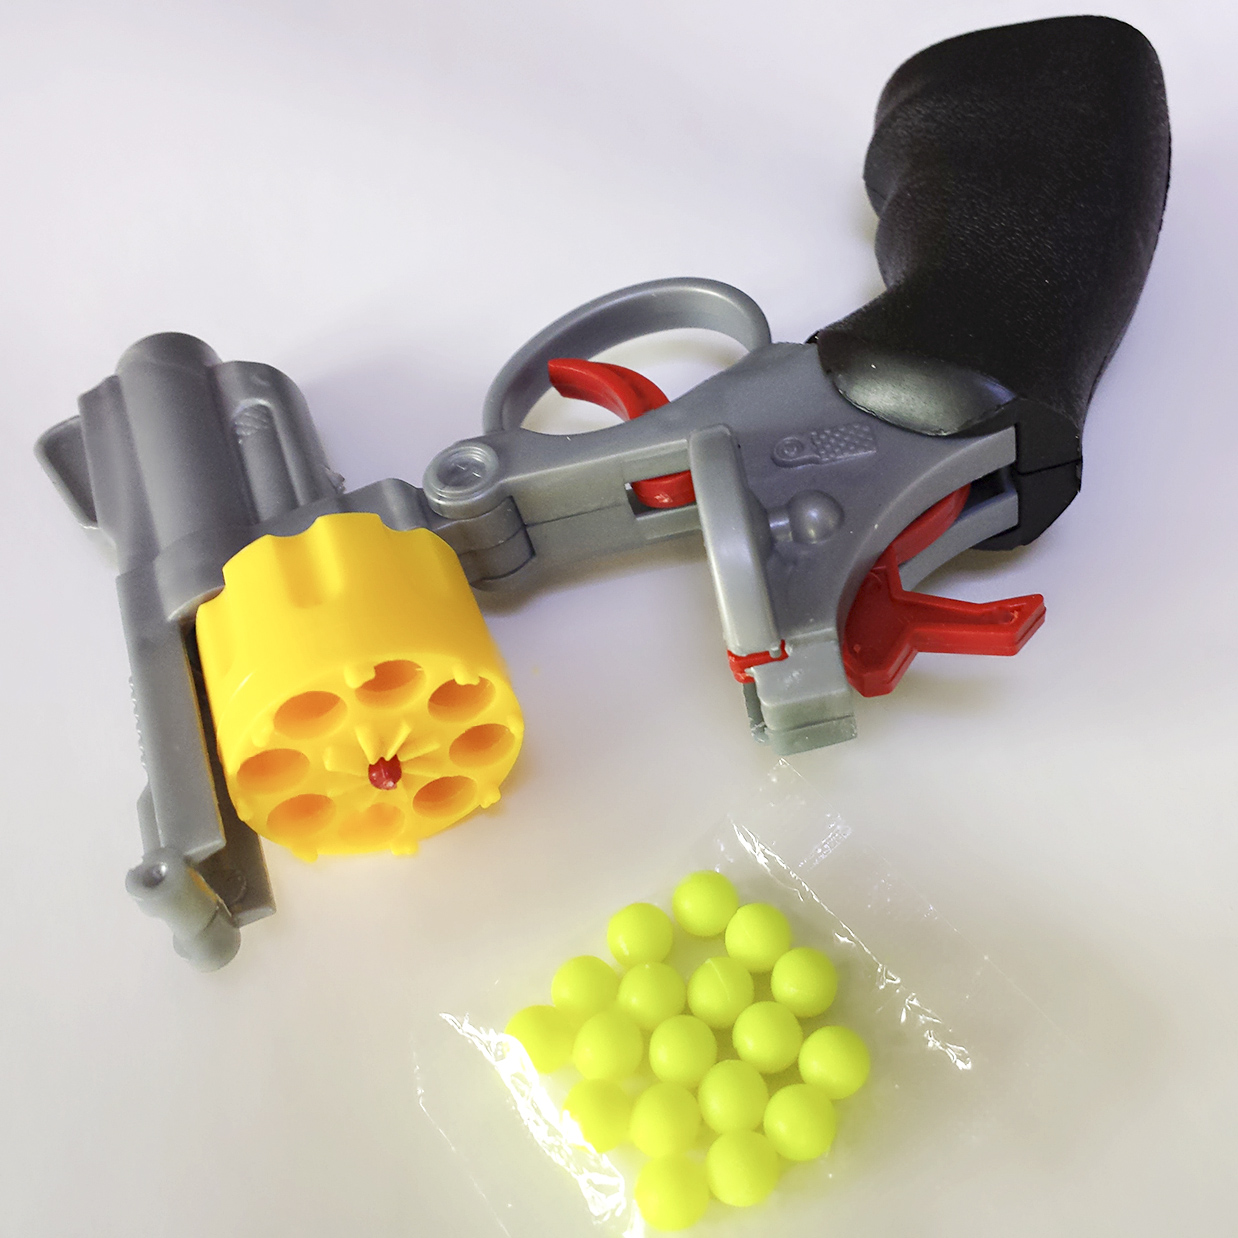 Toy Gun Soft Bullet Plasic Gun Toy for Kids Nerf Pistol Nerf Bullets Sniper Rifle Free